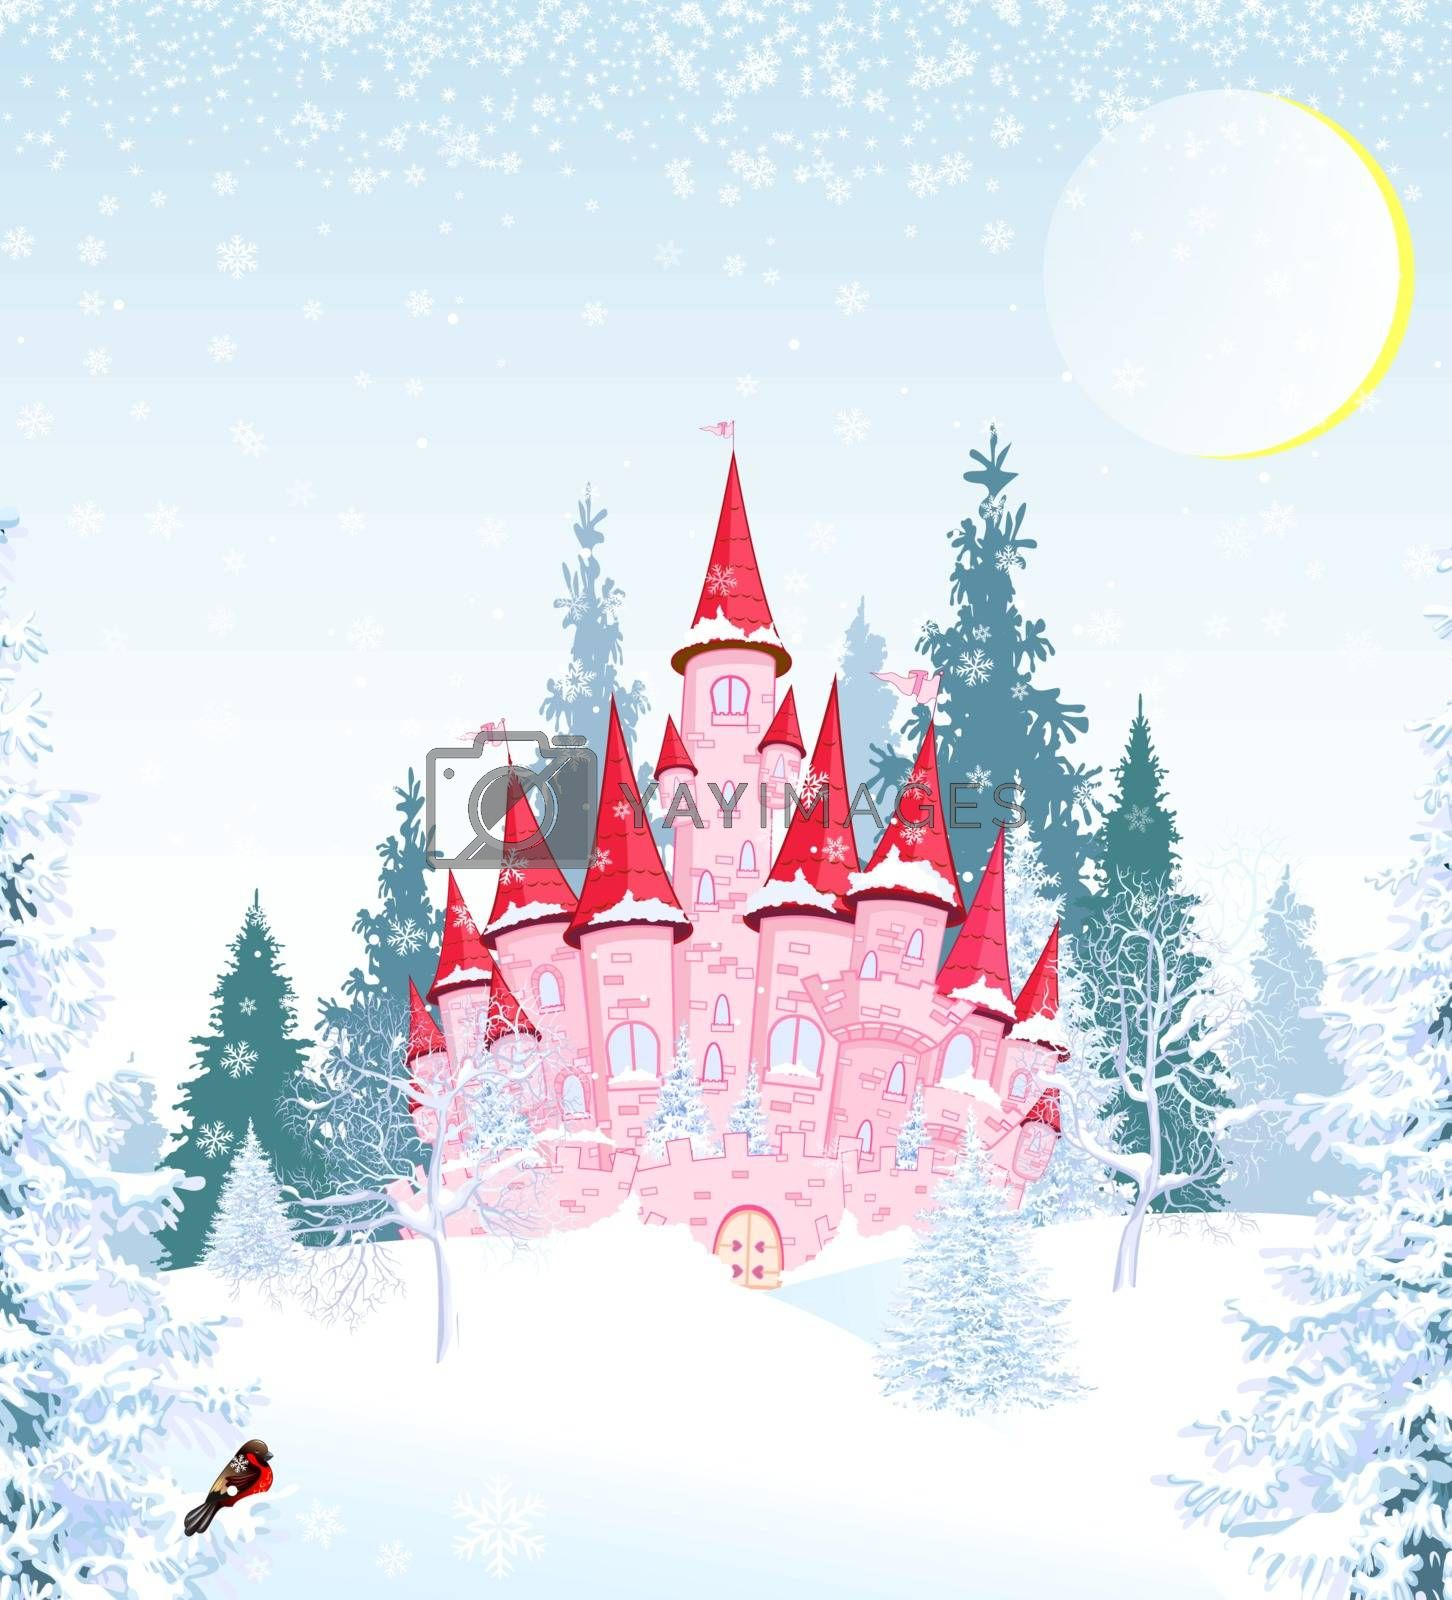 Princess castle in winter forest by liolle